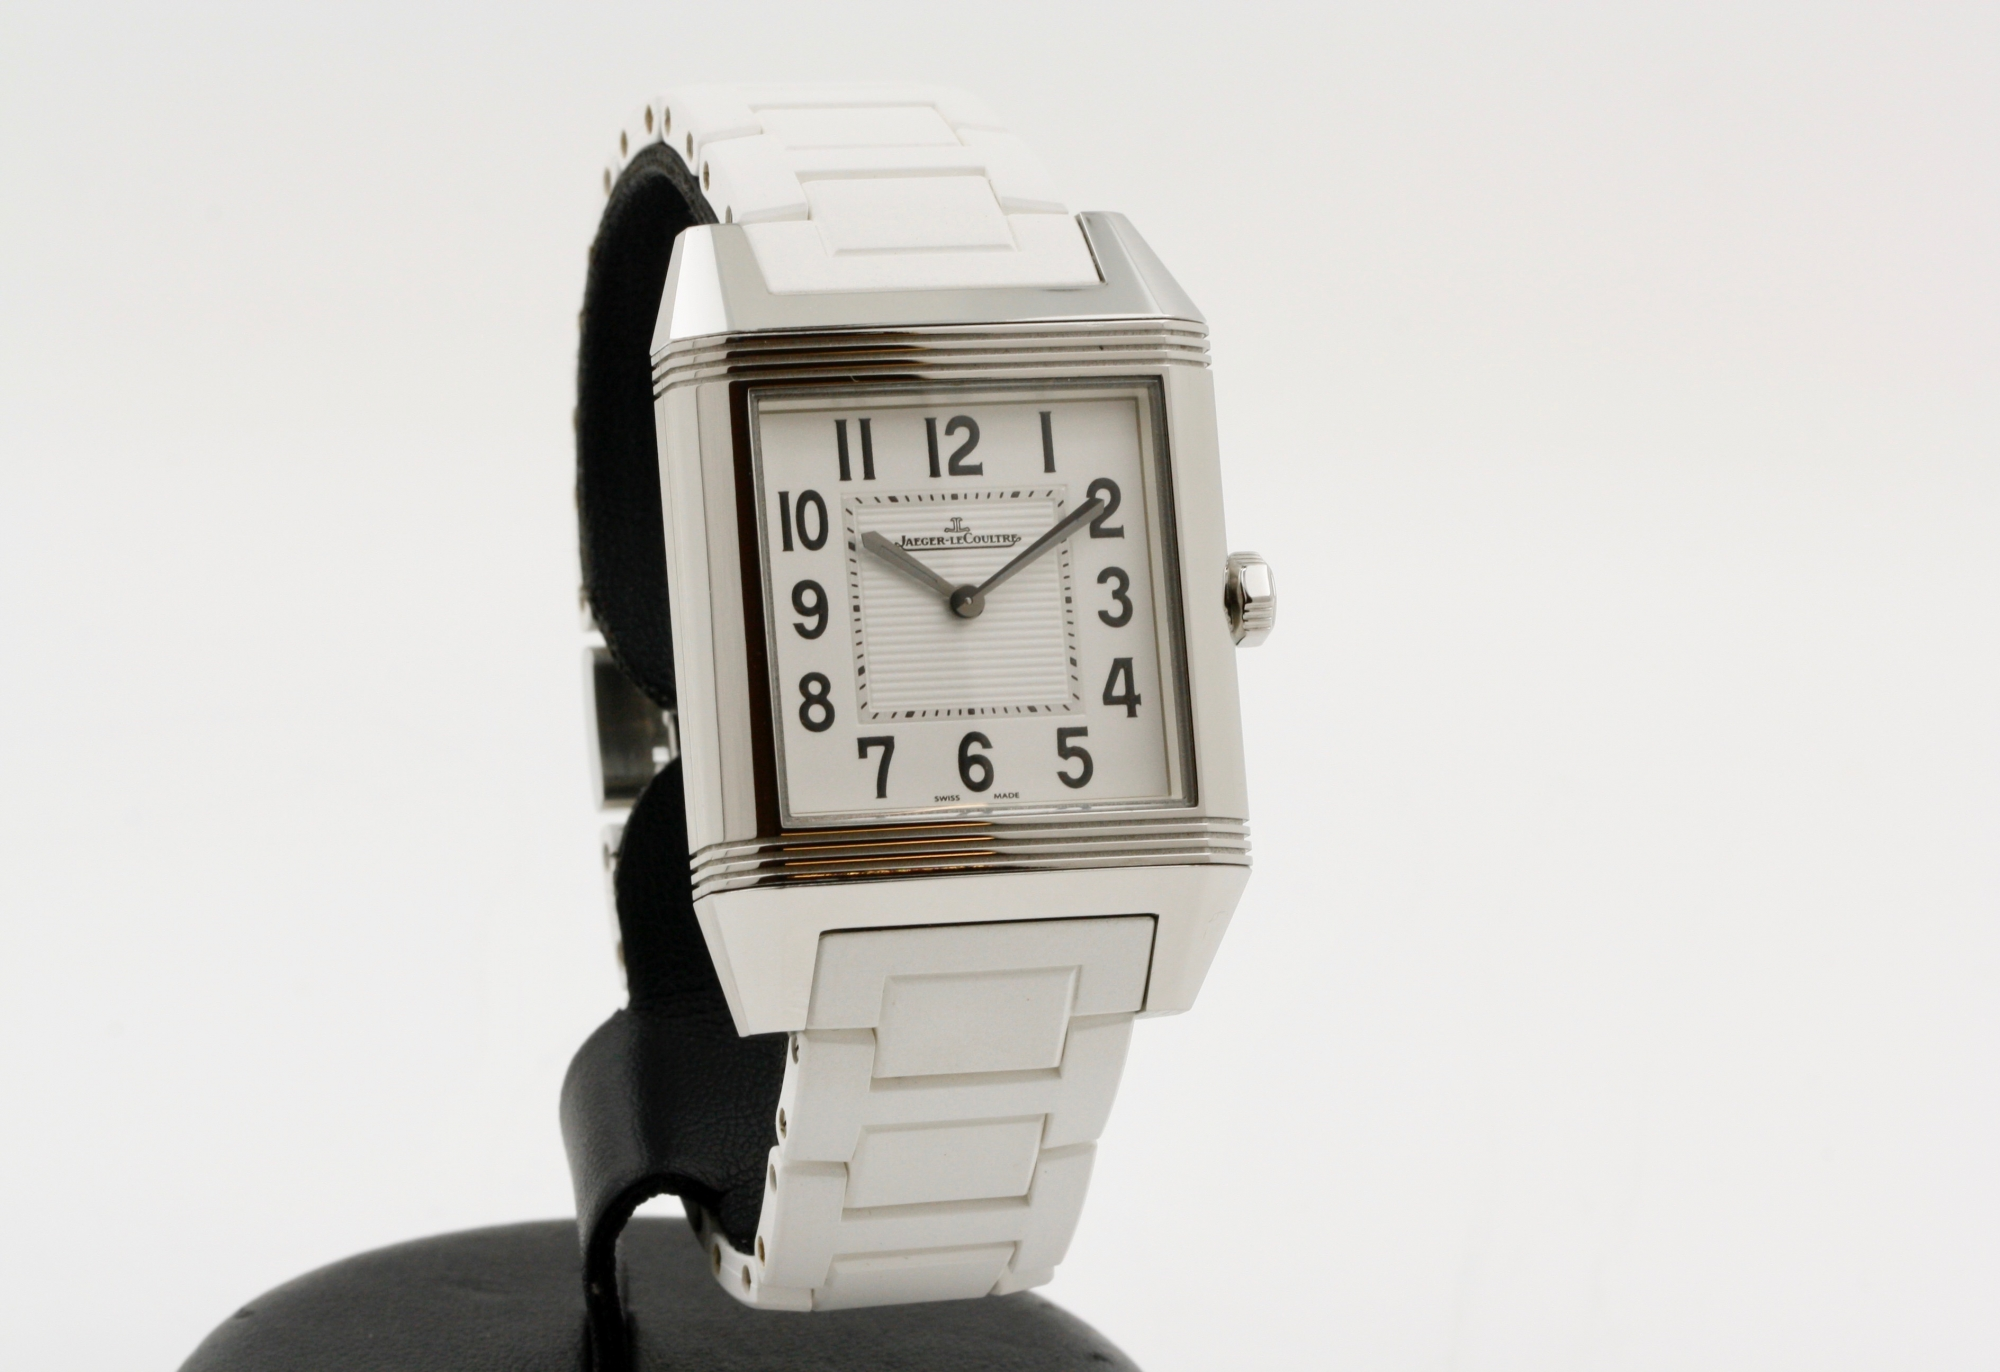 Jaeger-lecoultre Reverso squadra lady - FULL SET 2019 Q7068720 - Very good conditions /Steel 236.8.47 2019